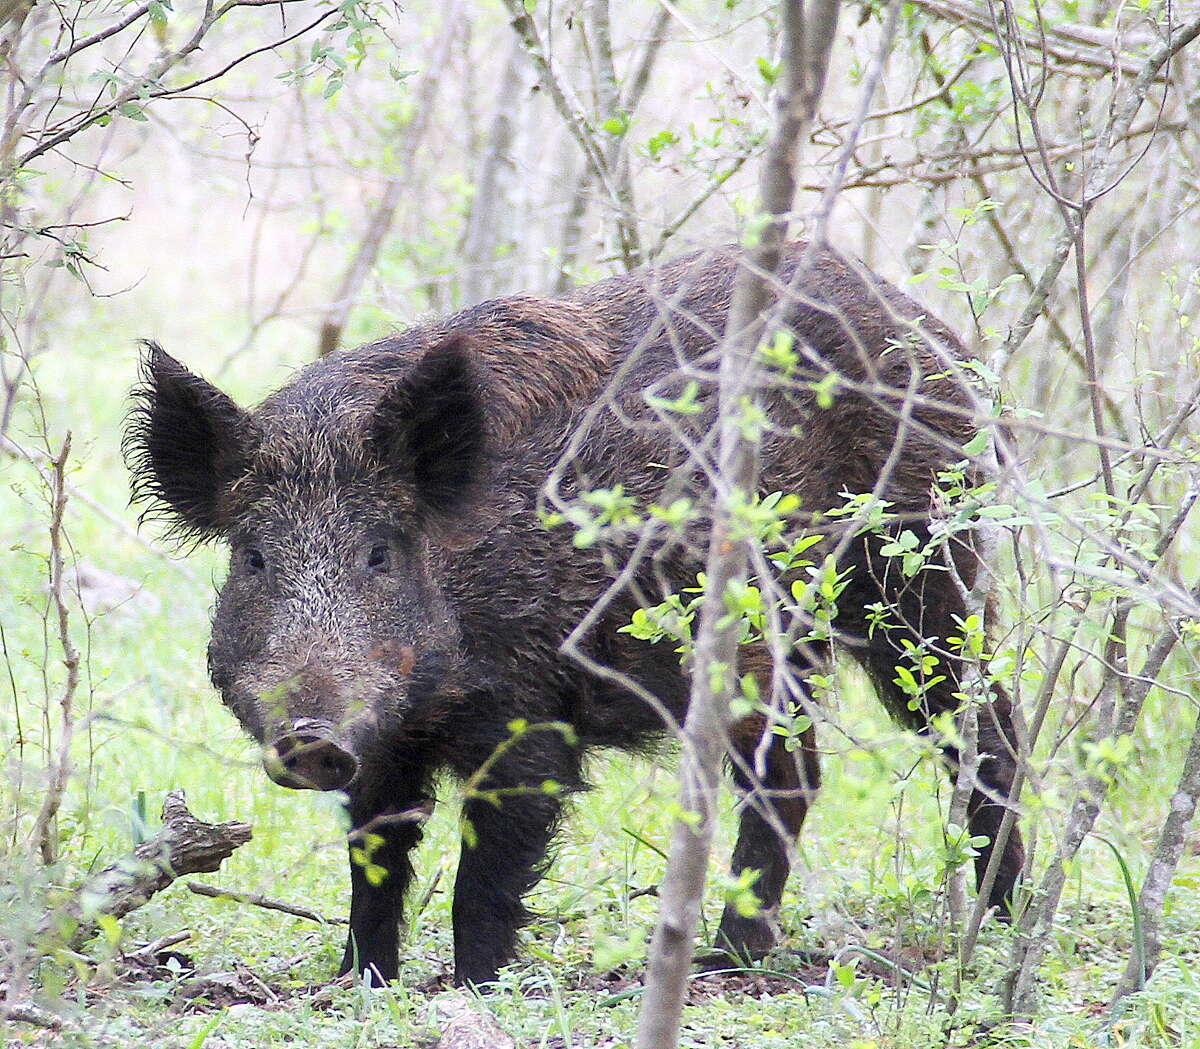 Bottomlands along the Sulphur River and White Oak Creek offer the best chance at feral hogs.